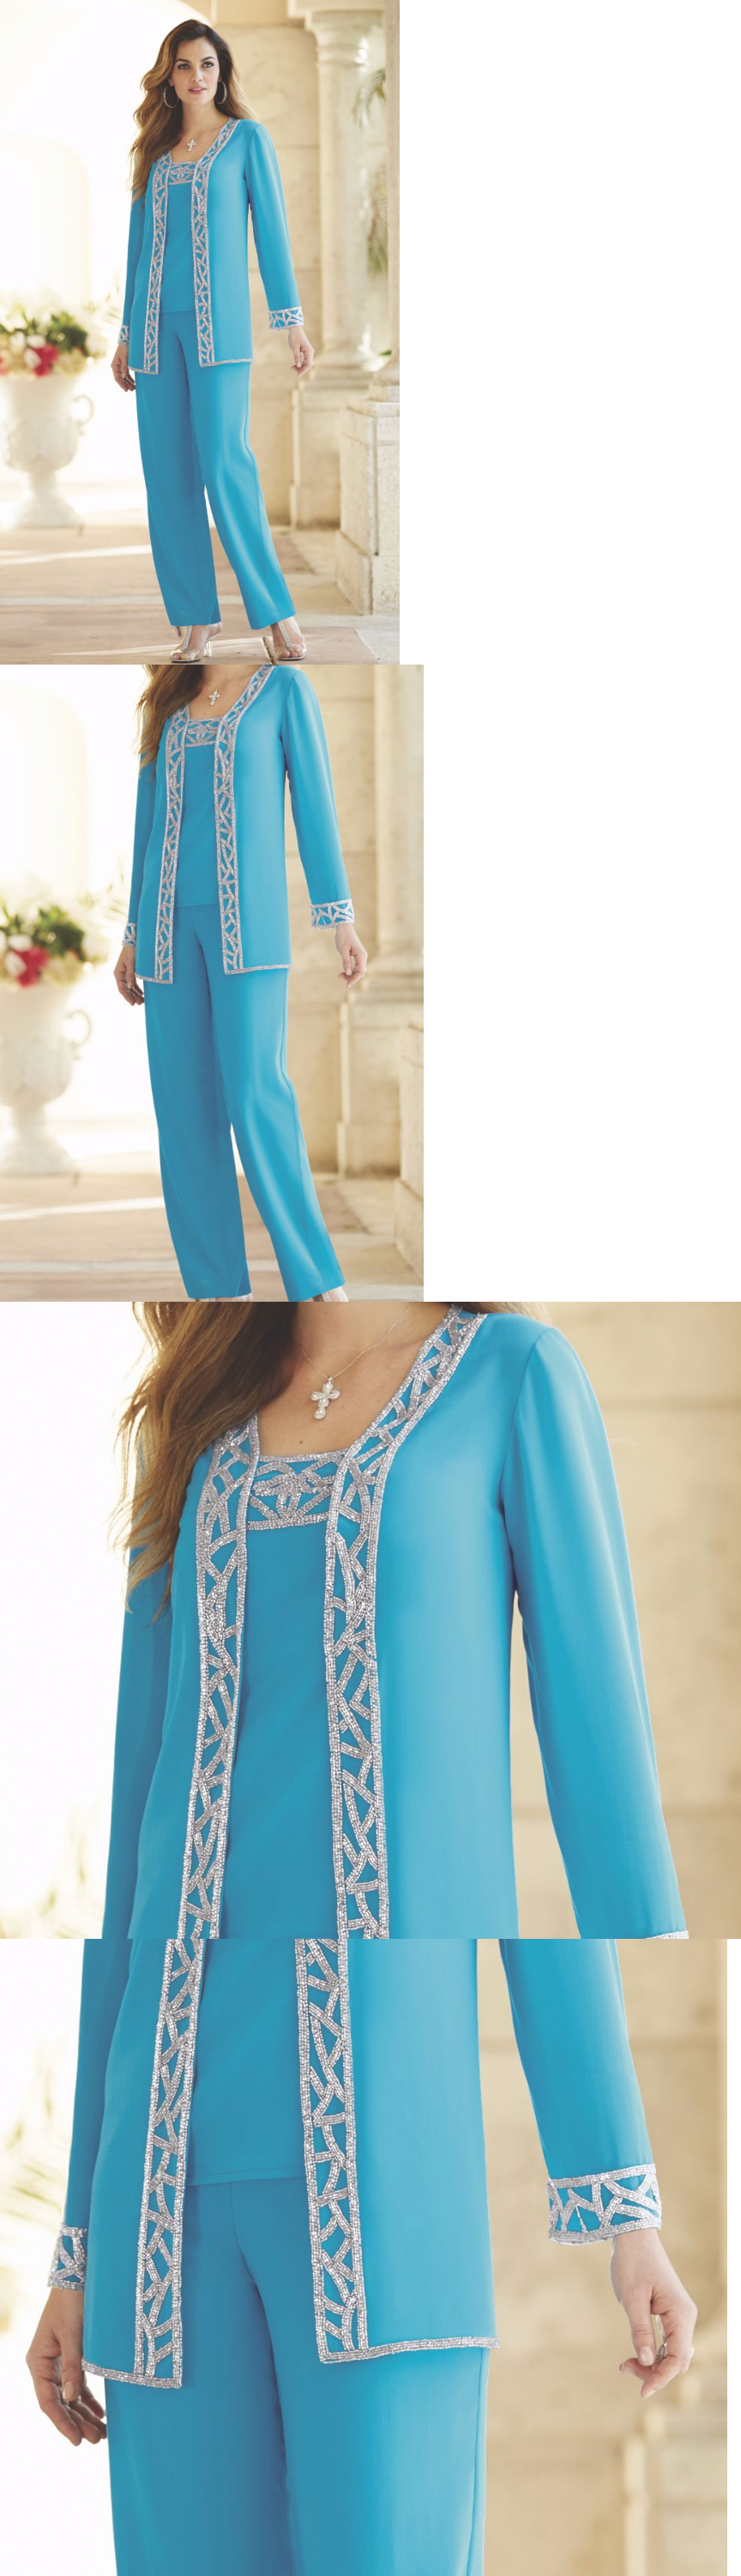 Mother of the Bride 131474: Formal Turquoise Beaded Mother Of The ...